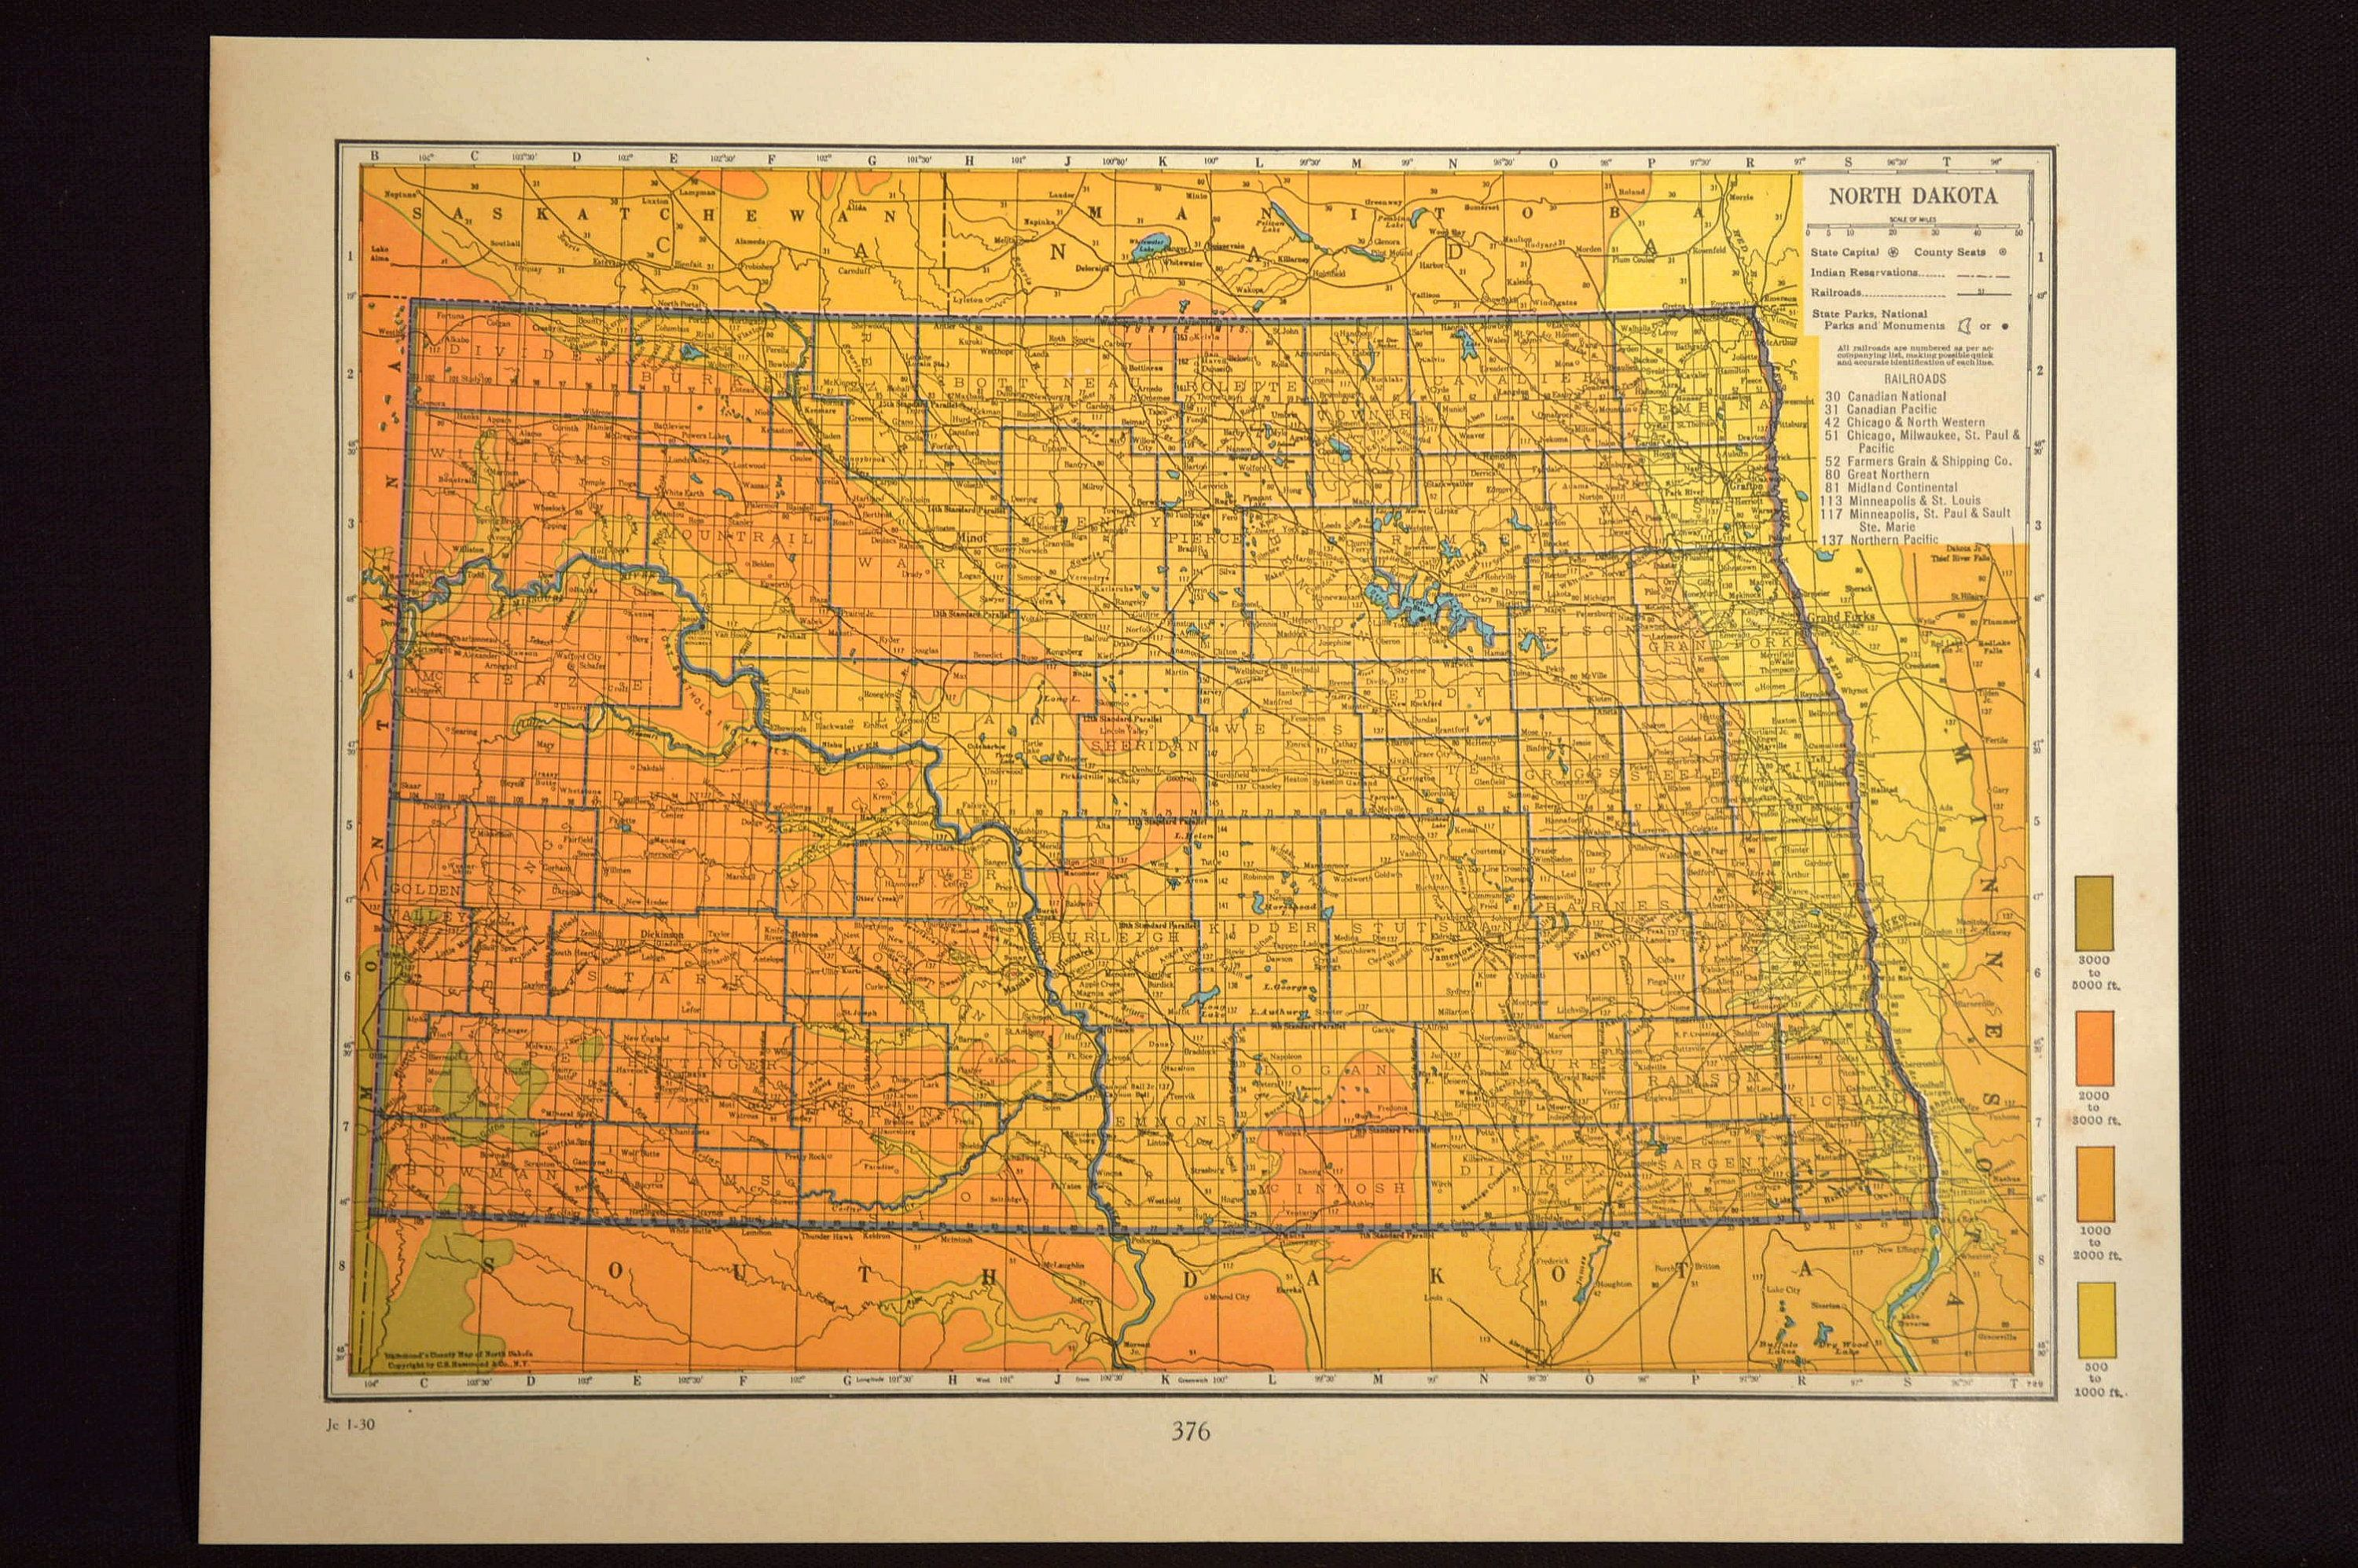 topographic map of north dakota North Dakota Map Of North Dakota Wall Decor Art Topographic Map